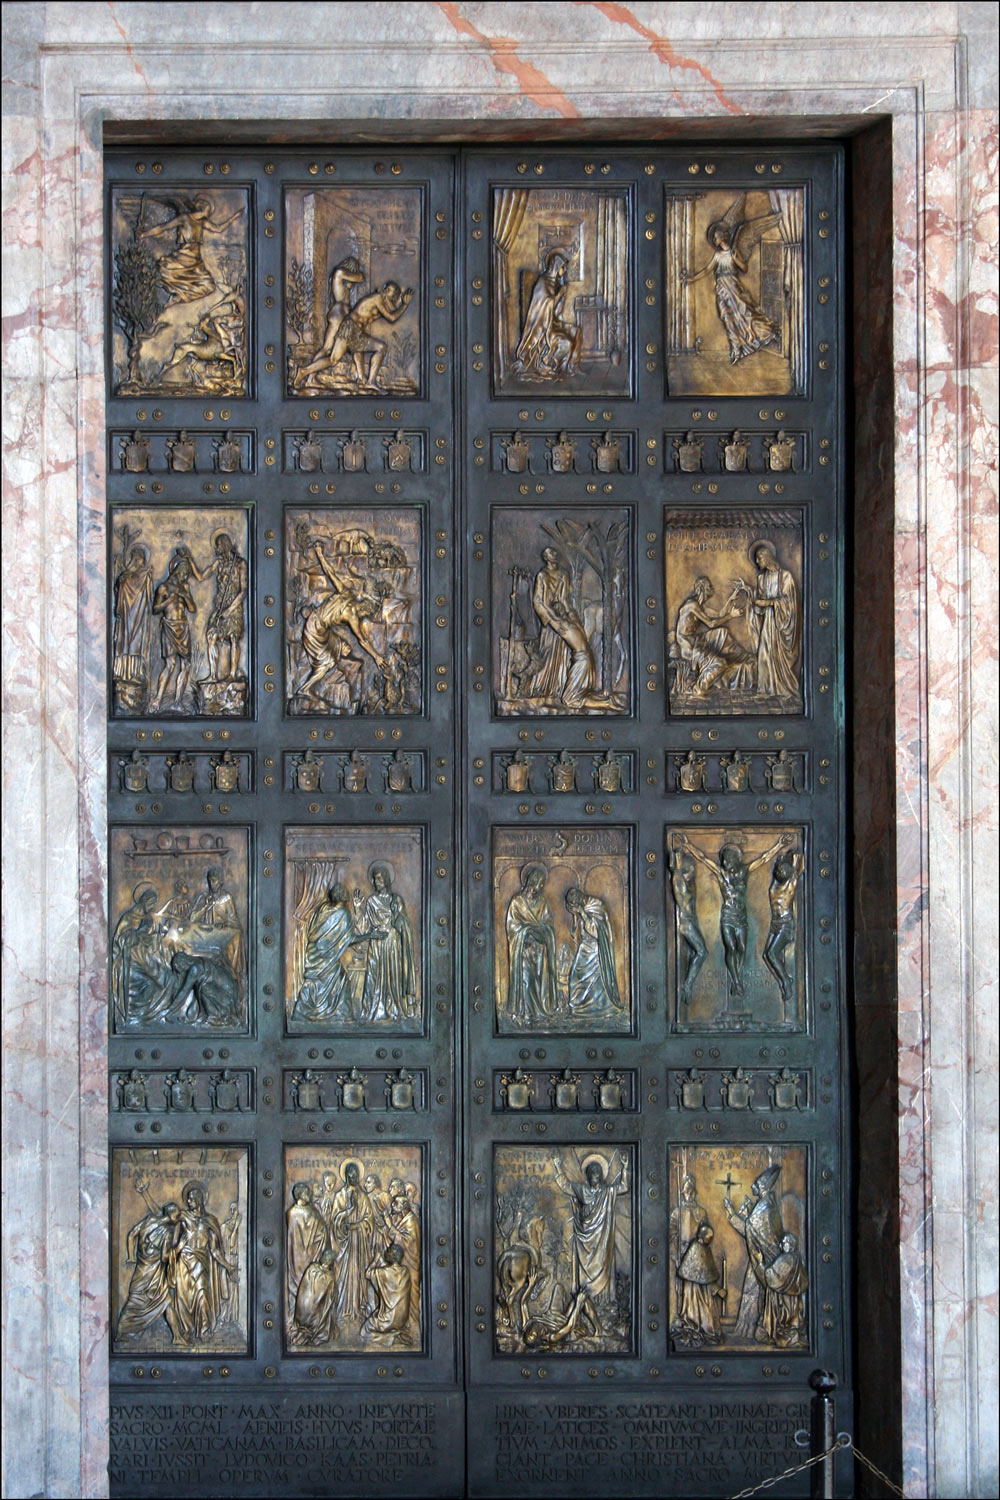 The Holy Door of the Papal Basilica of Saint Peter